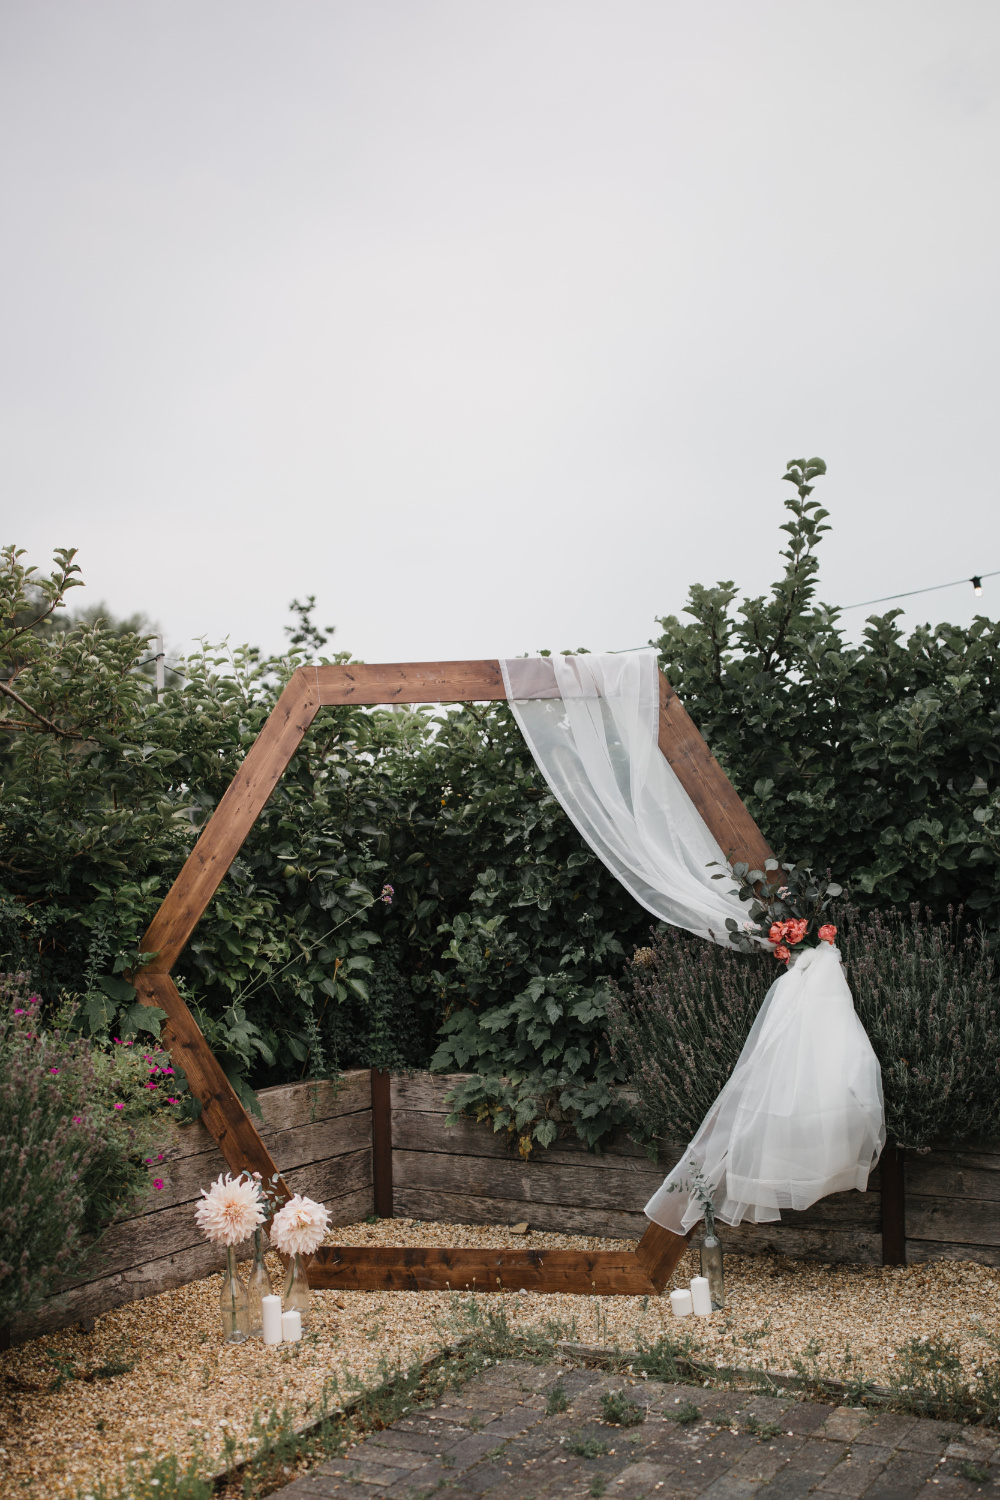 Hexagon Arch Backdrop Flowers Field Kitchen Wedding Siobhan Amy Photography